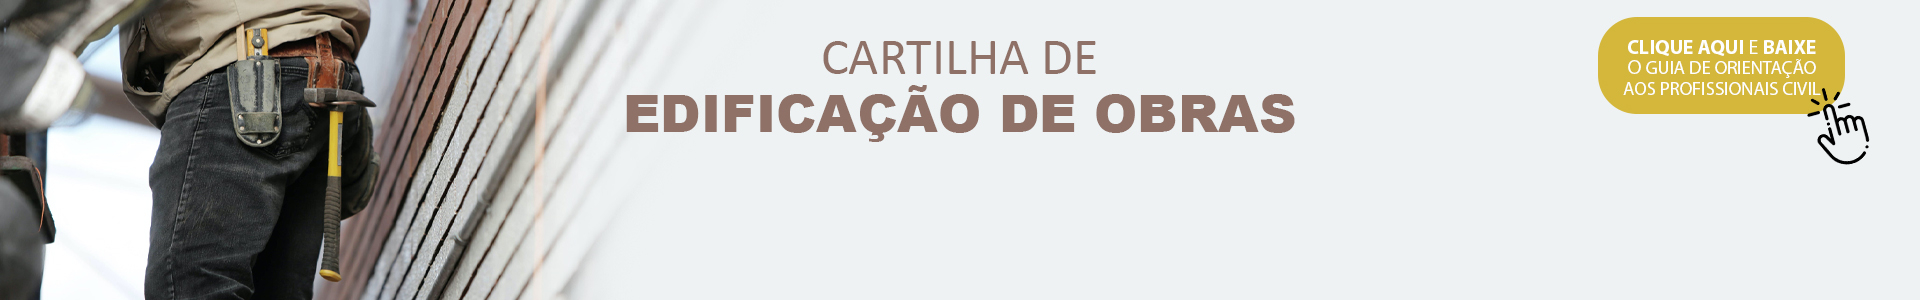 cartilha_de-obra__original